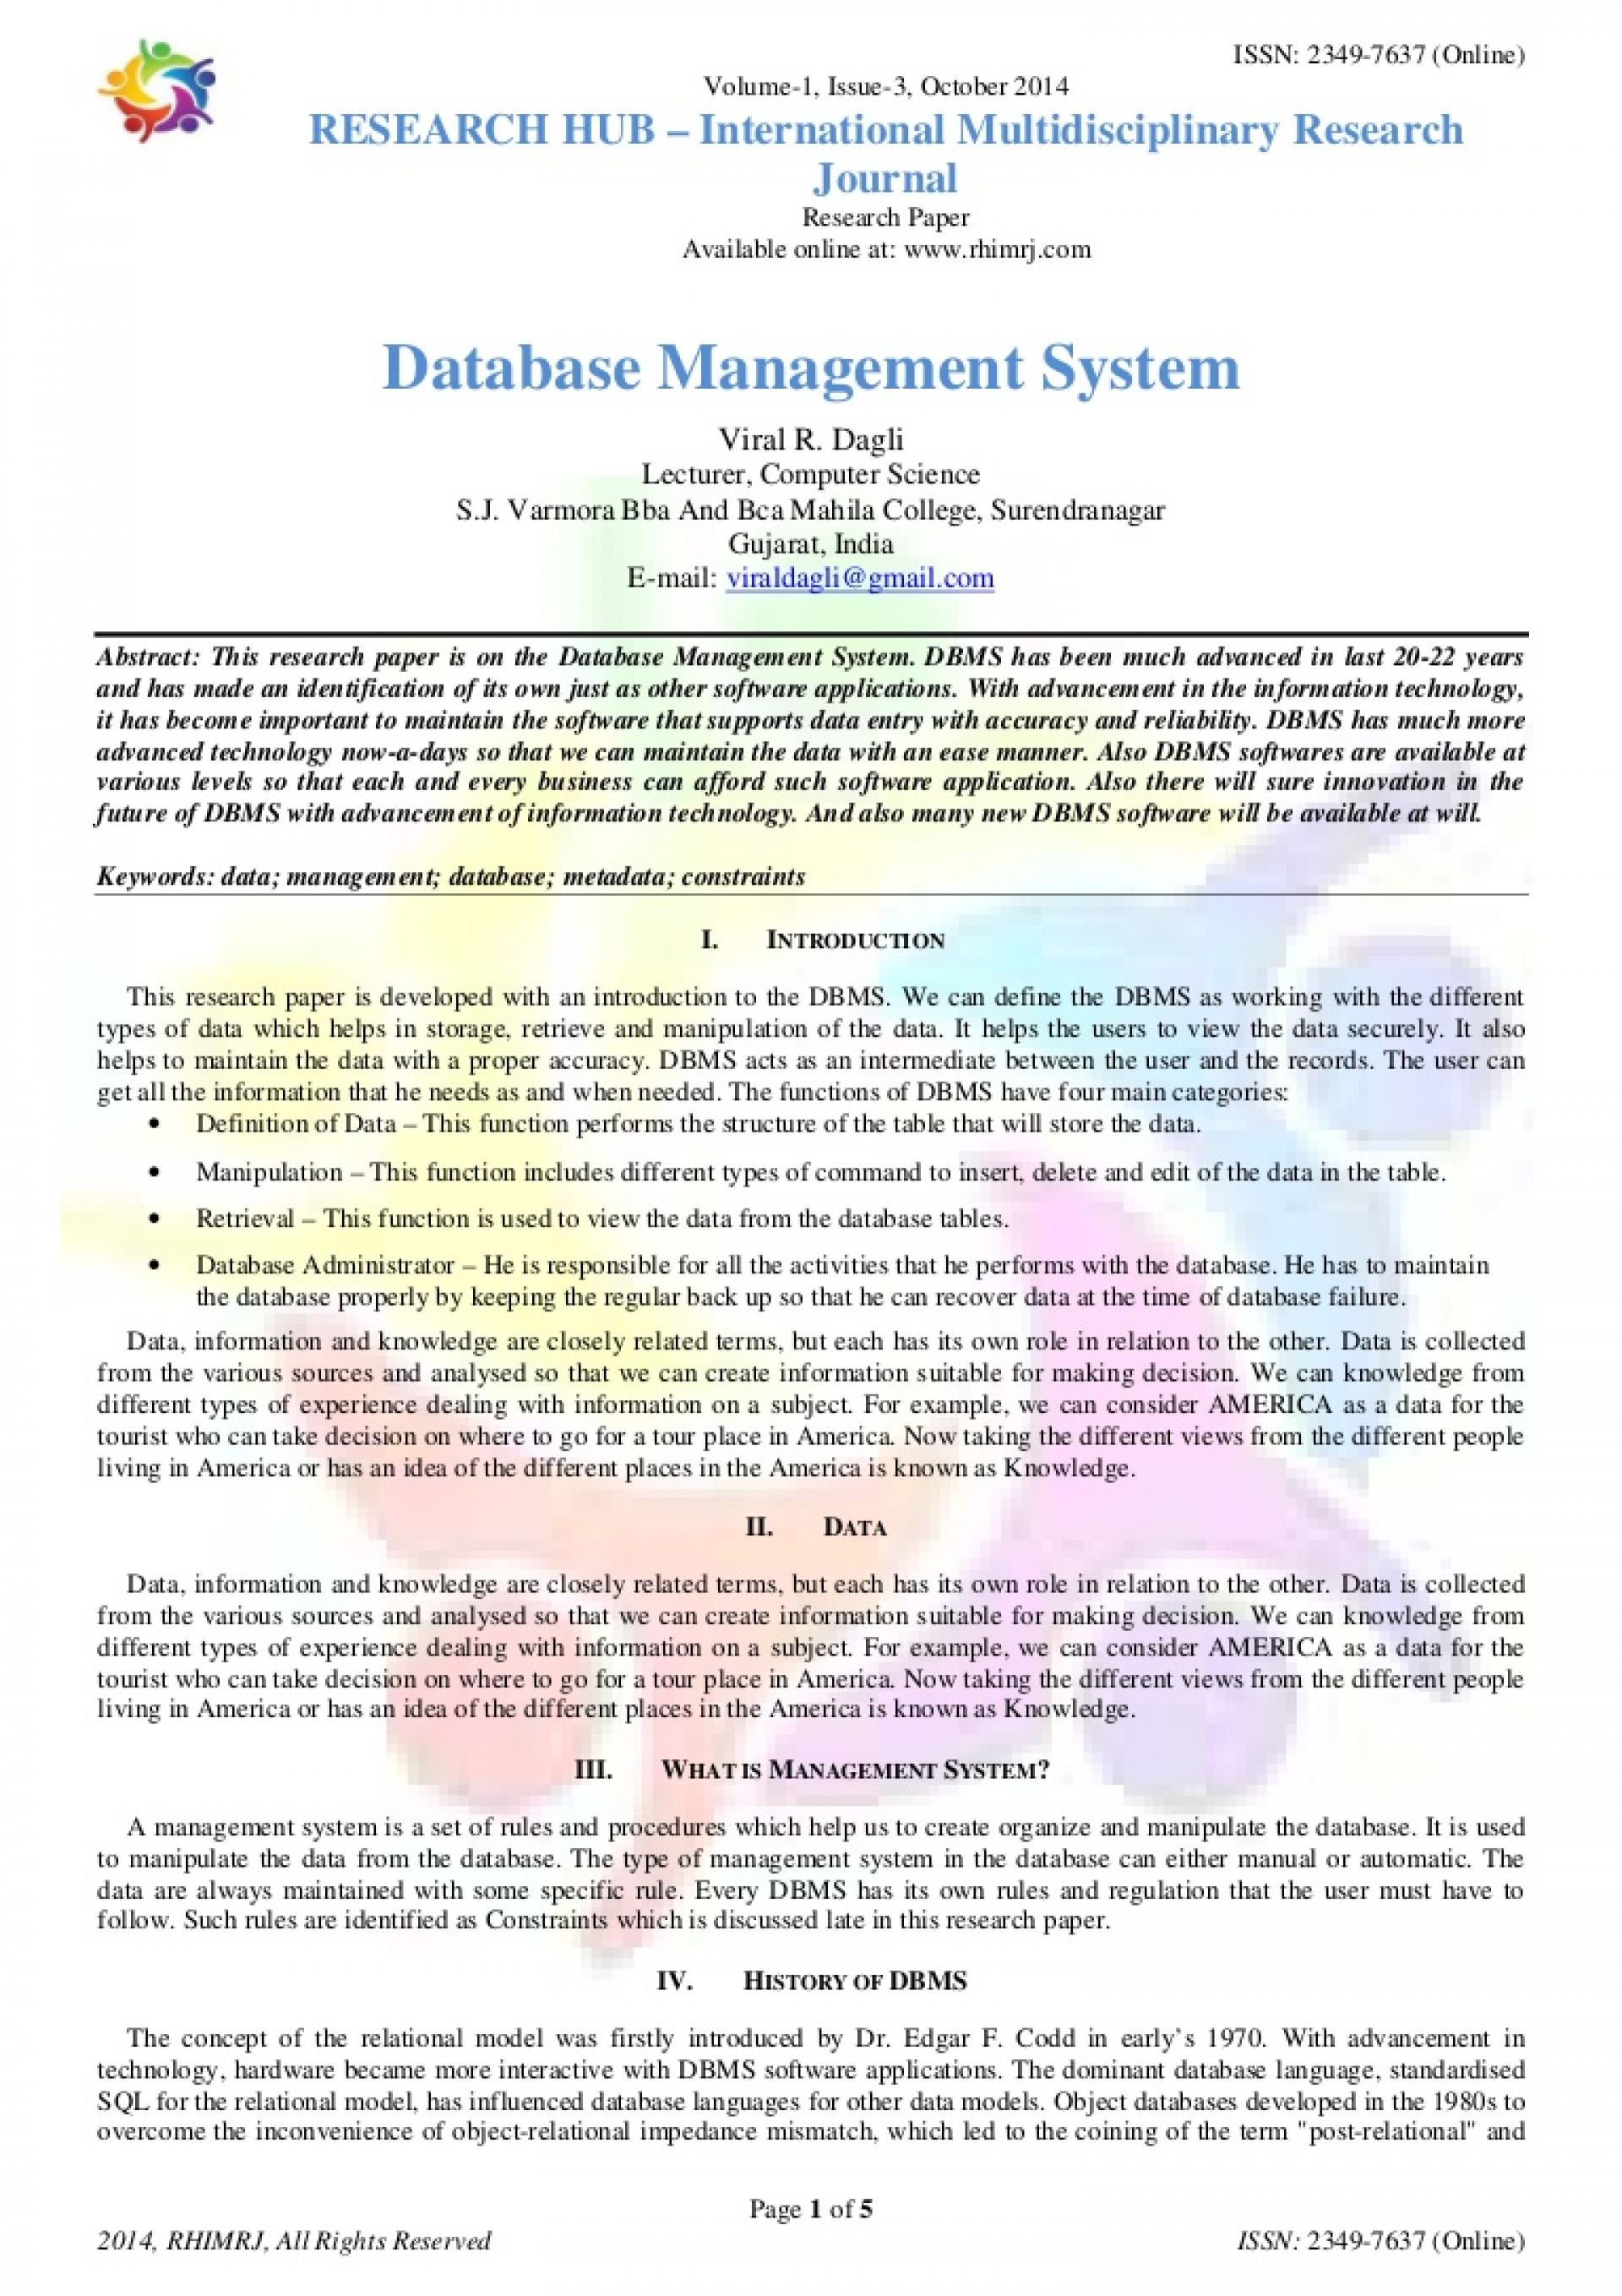 012 Oct14010304 Conversion Gate02 Thumbnail Research Paper Sensational Database Ieee Papers On Management System Pdf 1920